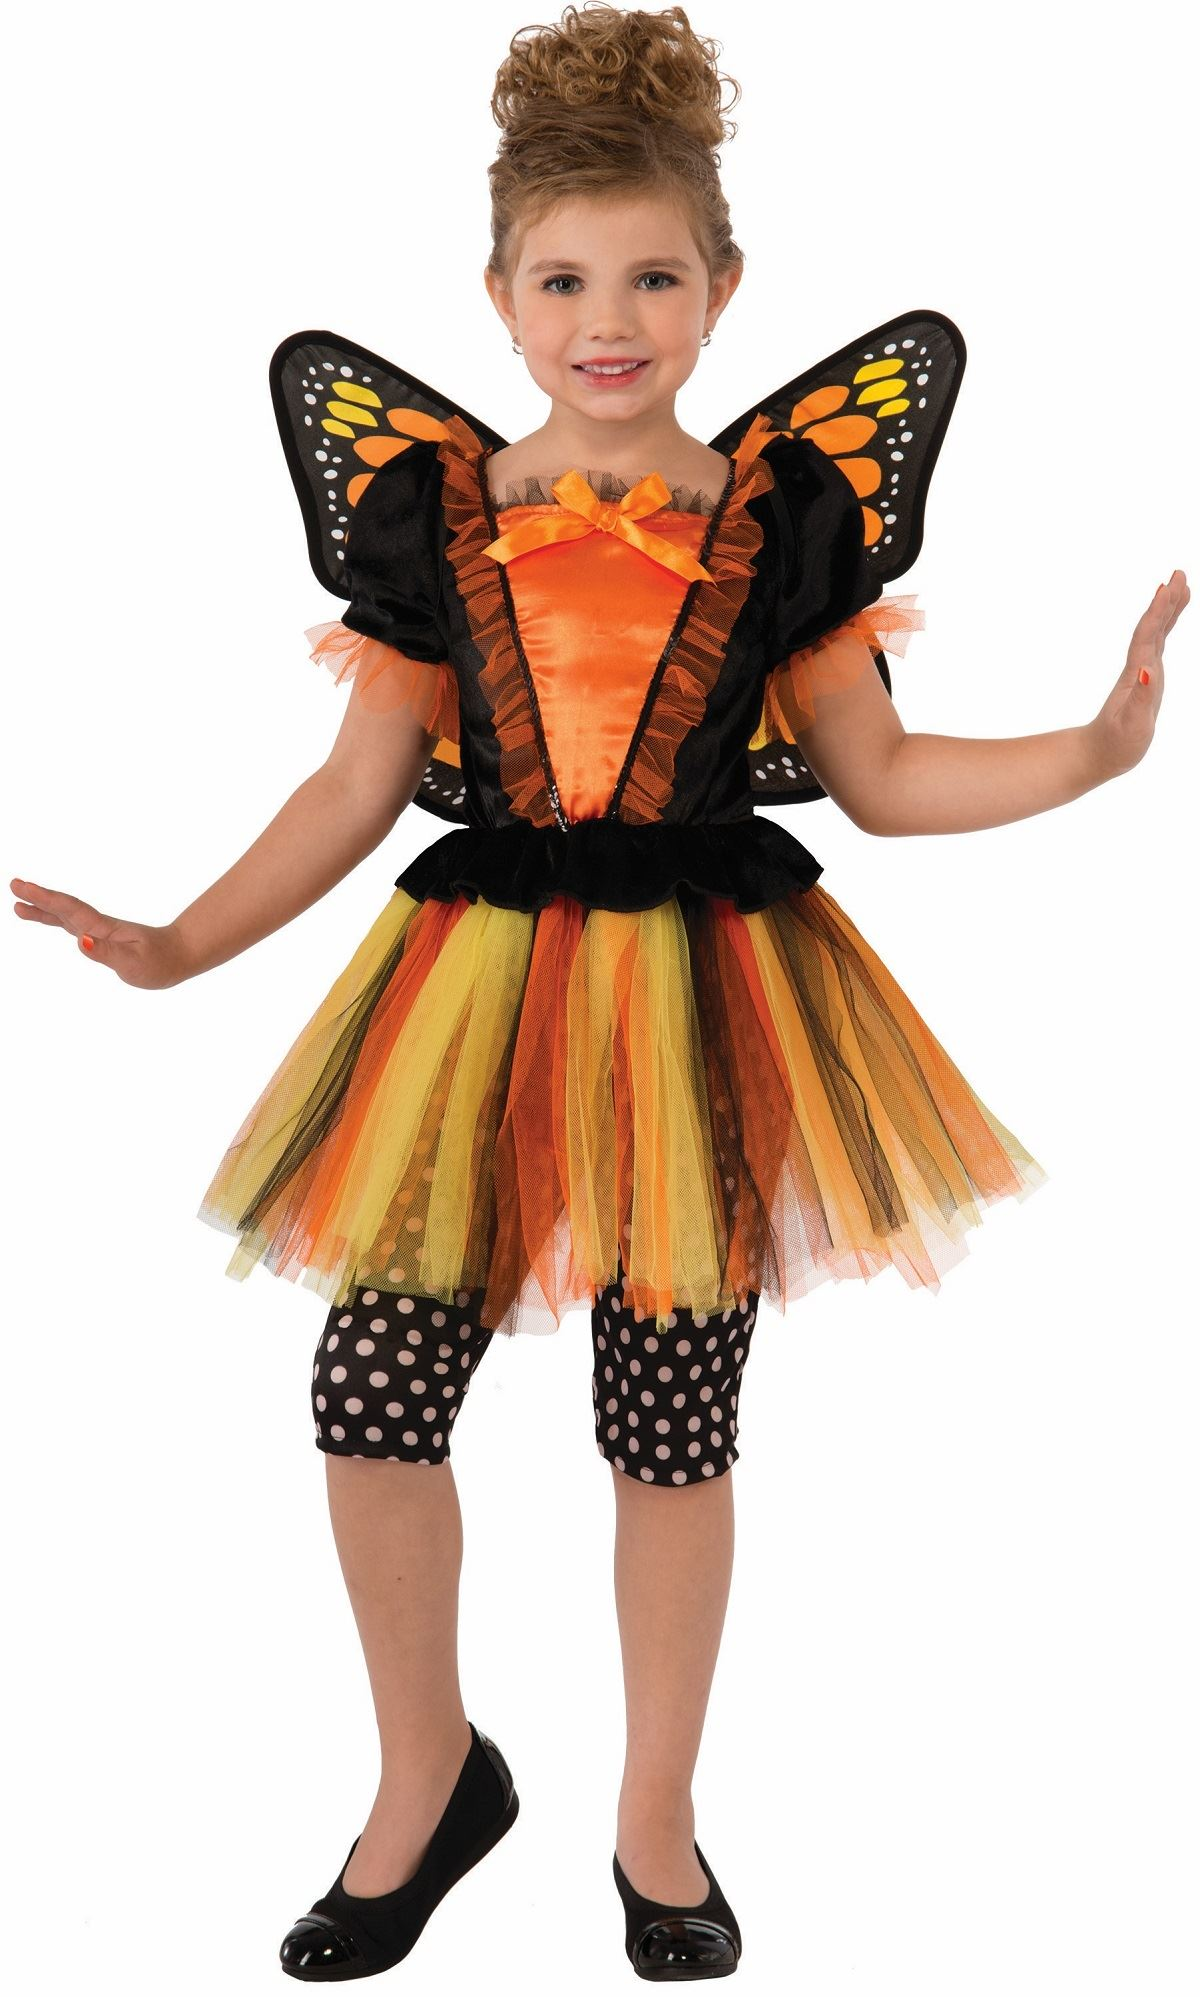 Butterfly Halloween Costumes 1000 images about halloween on pinterest butterfly costume monarch butterfly costume and mermaid costumes Monarch Girls Butterfly Halloween Costume